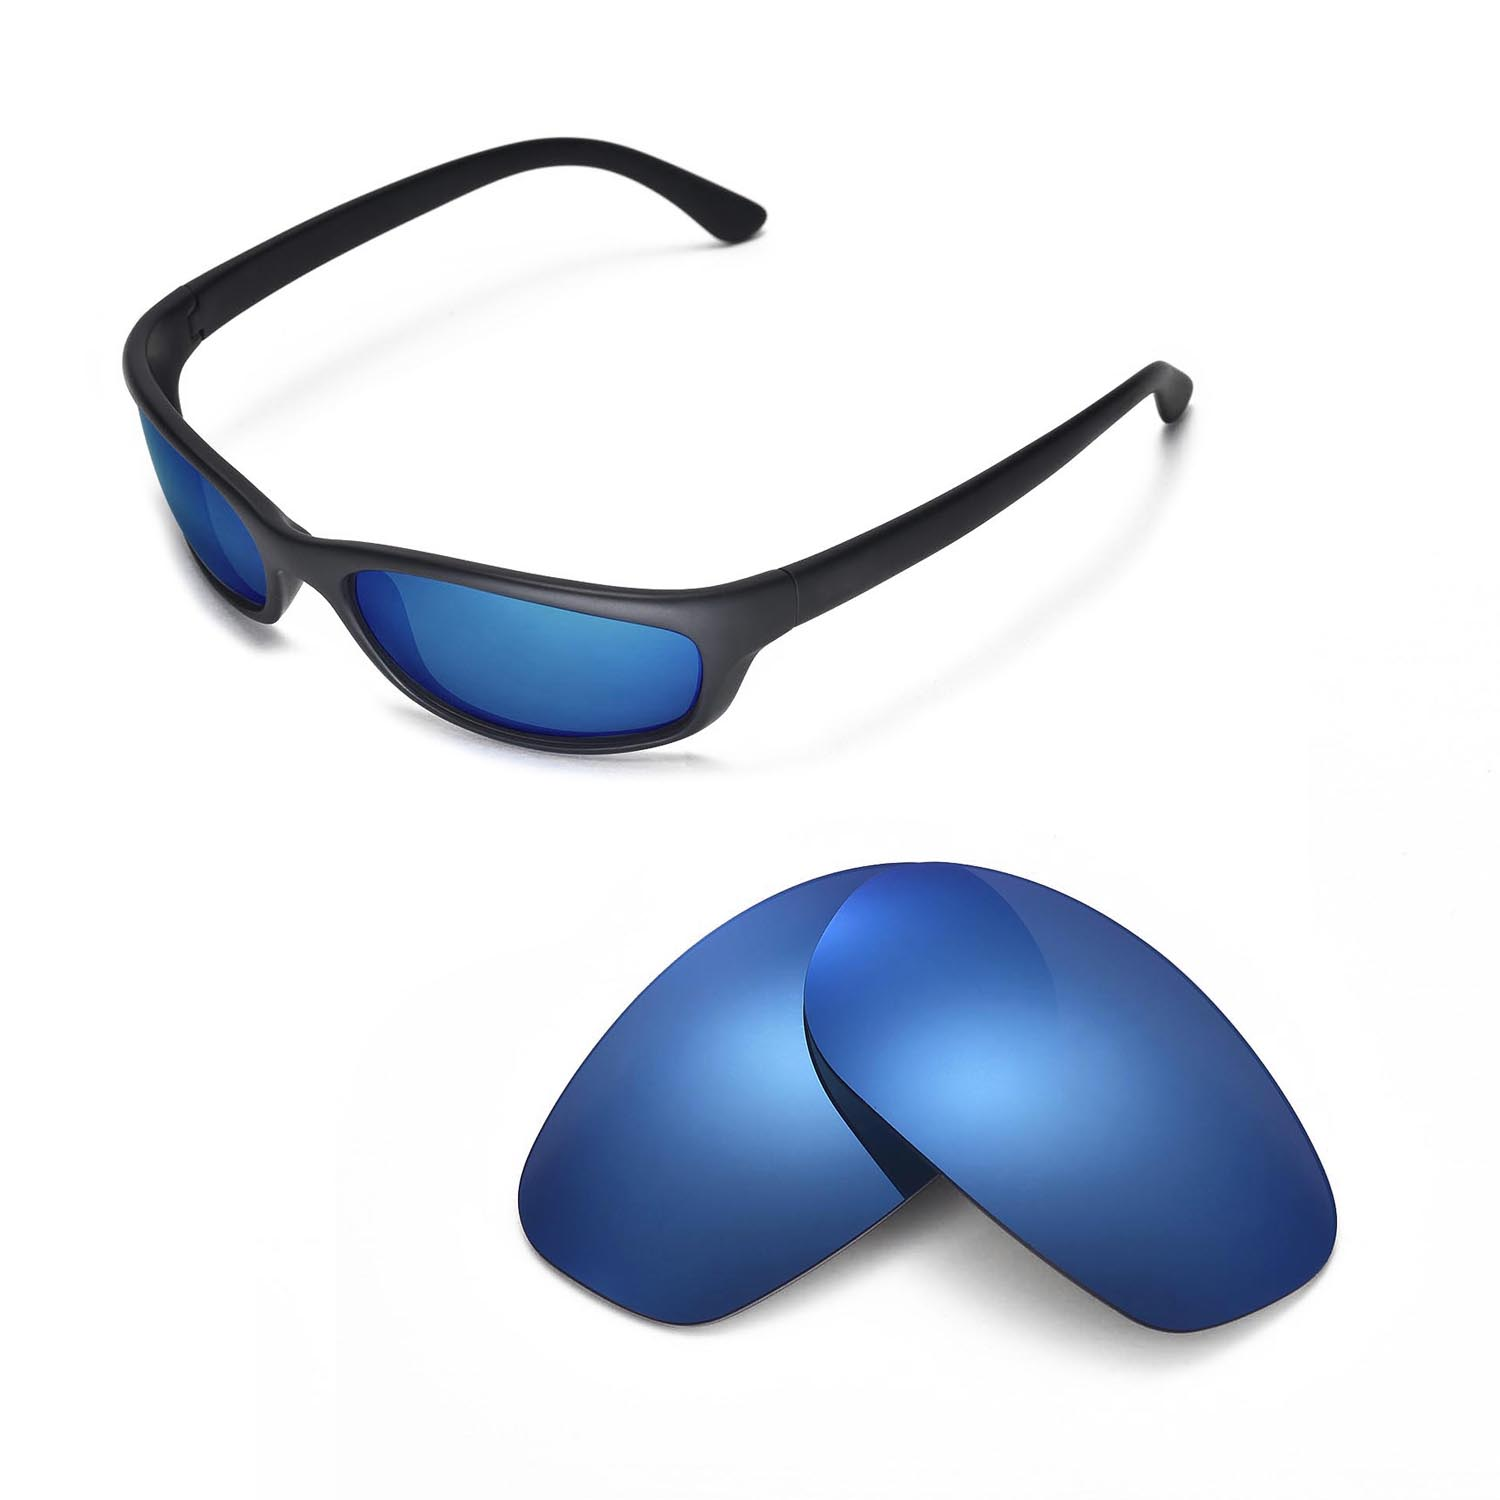 727988e664 Details about New Walleva Polarized Ice Blue Replacement Lenses For Ray-Ban  RB4115 Sunglasses